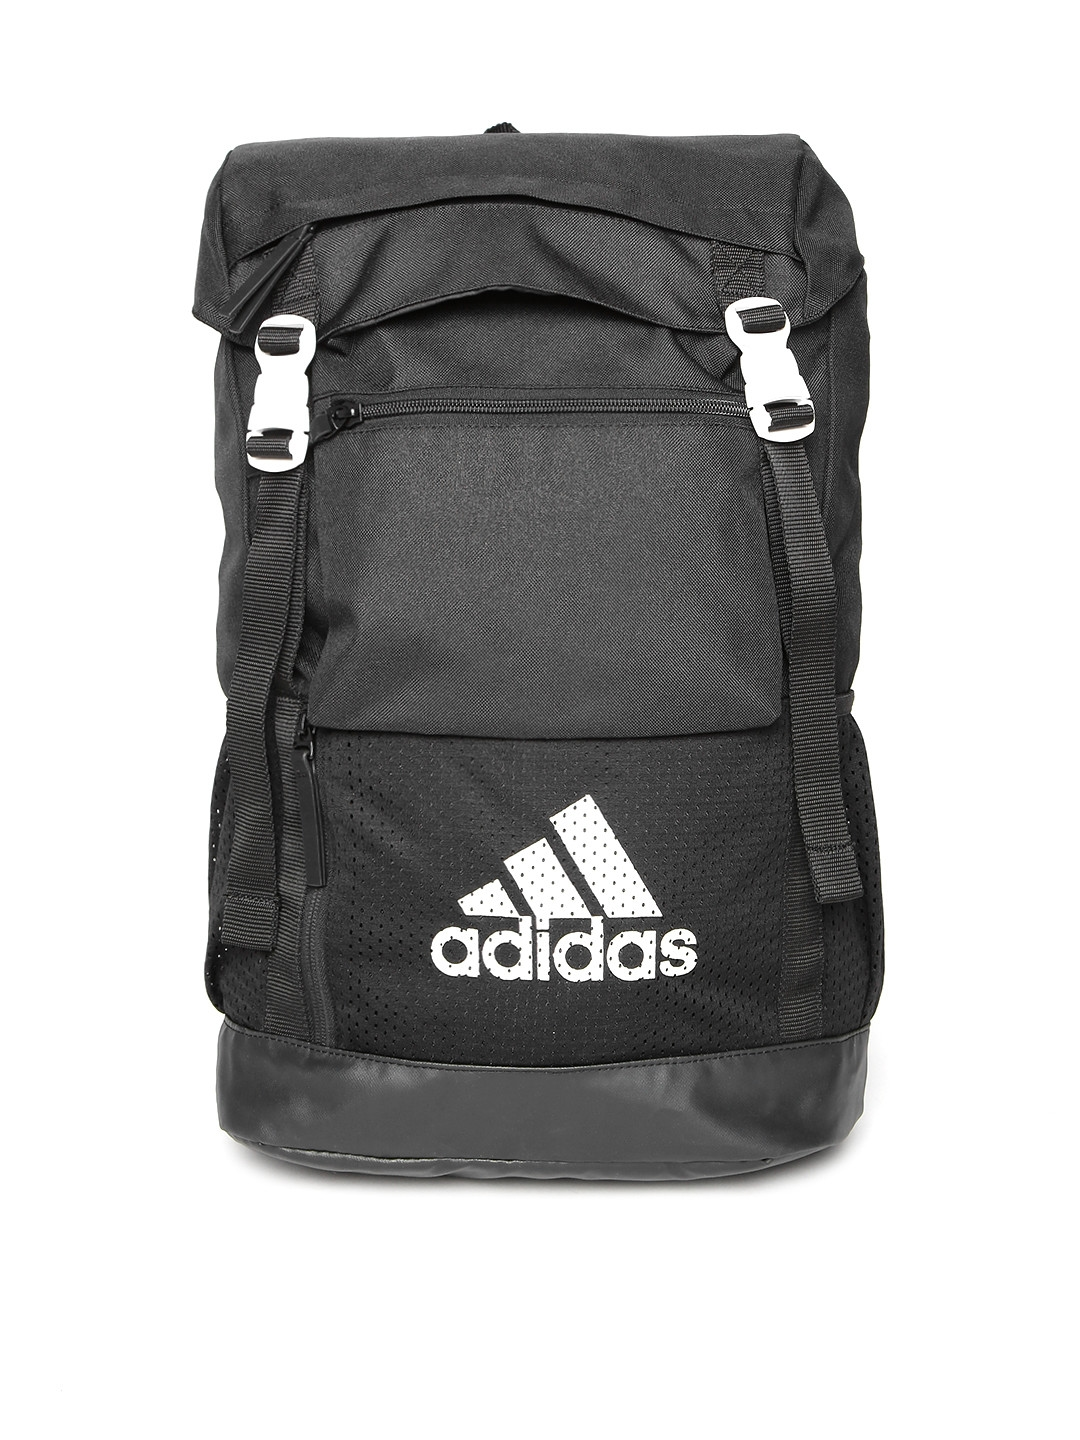 a140a37c61a7 Buy ADIDAS Unisex Black NGA 2.0 M Laptop Backpack - Backpacks for Unisex  1671305